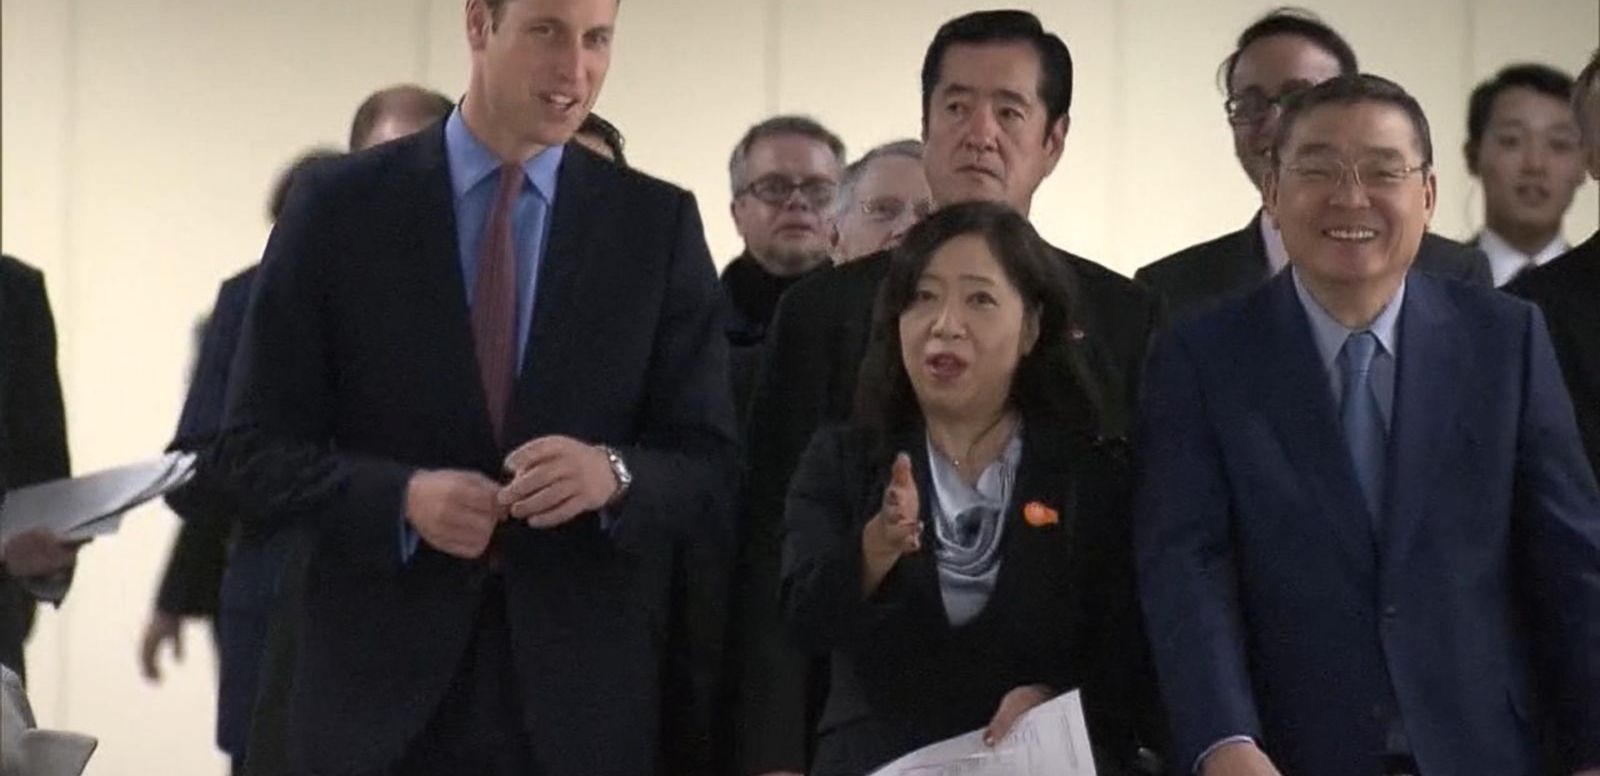 VIDEO: Prince William Visits Japanese Tsunami Zone